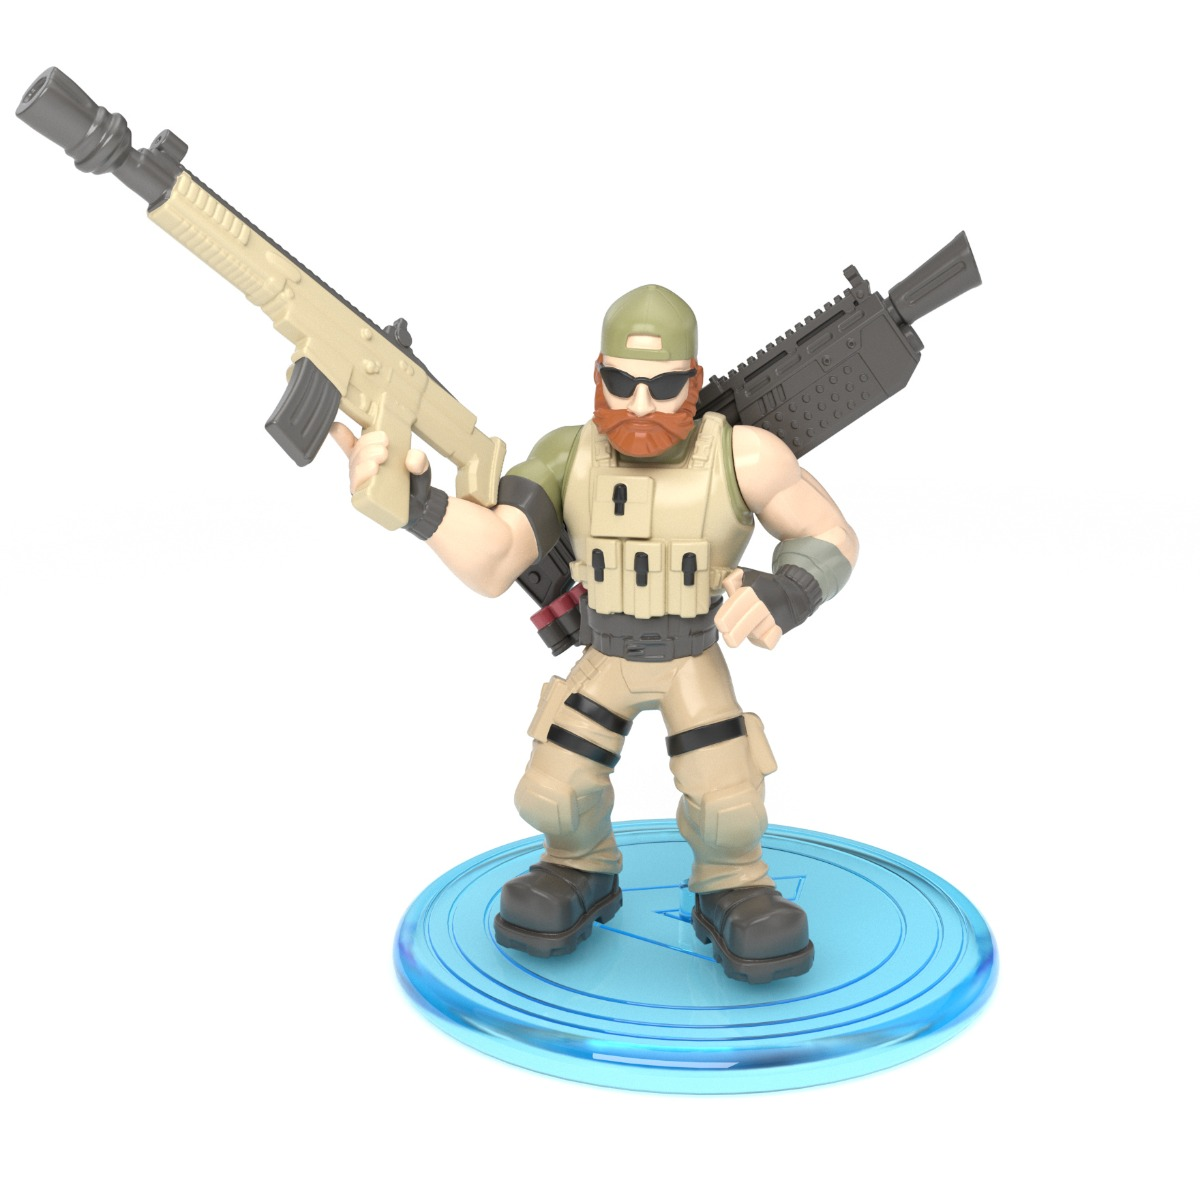 Figurina Fortnite S2 - Sledge Hammer